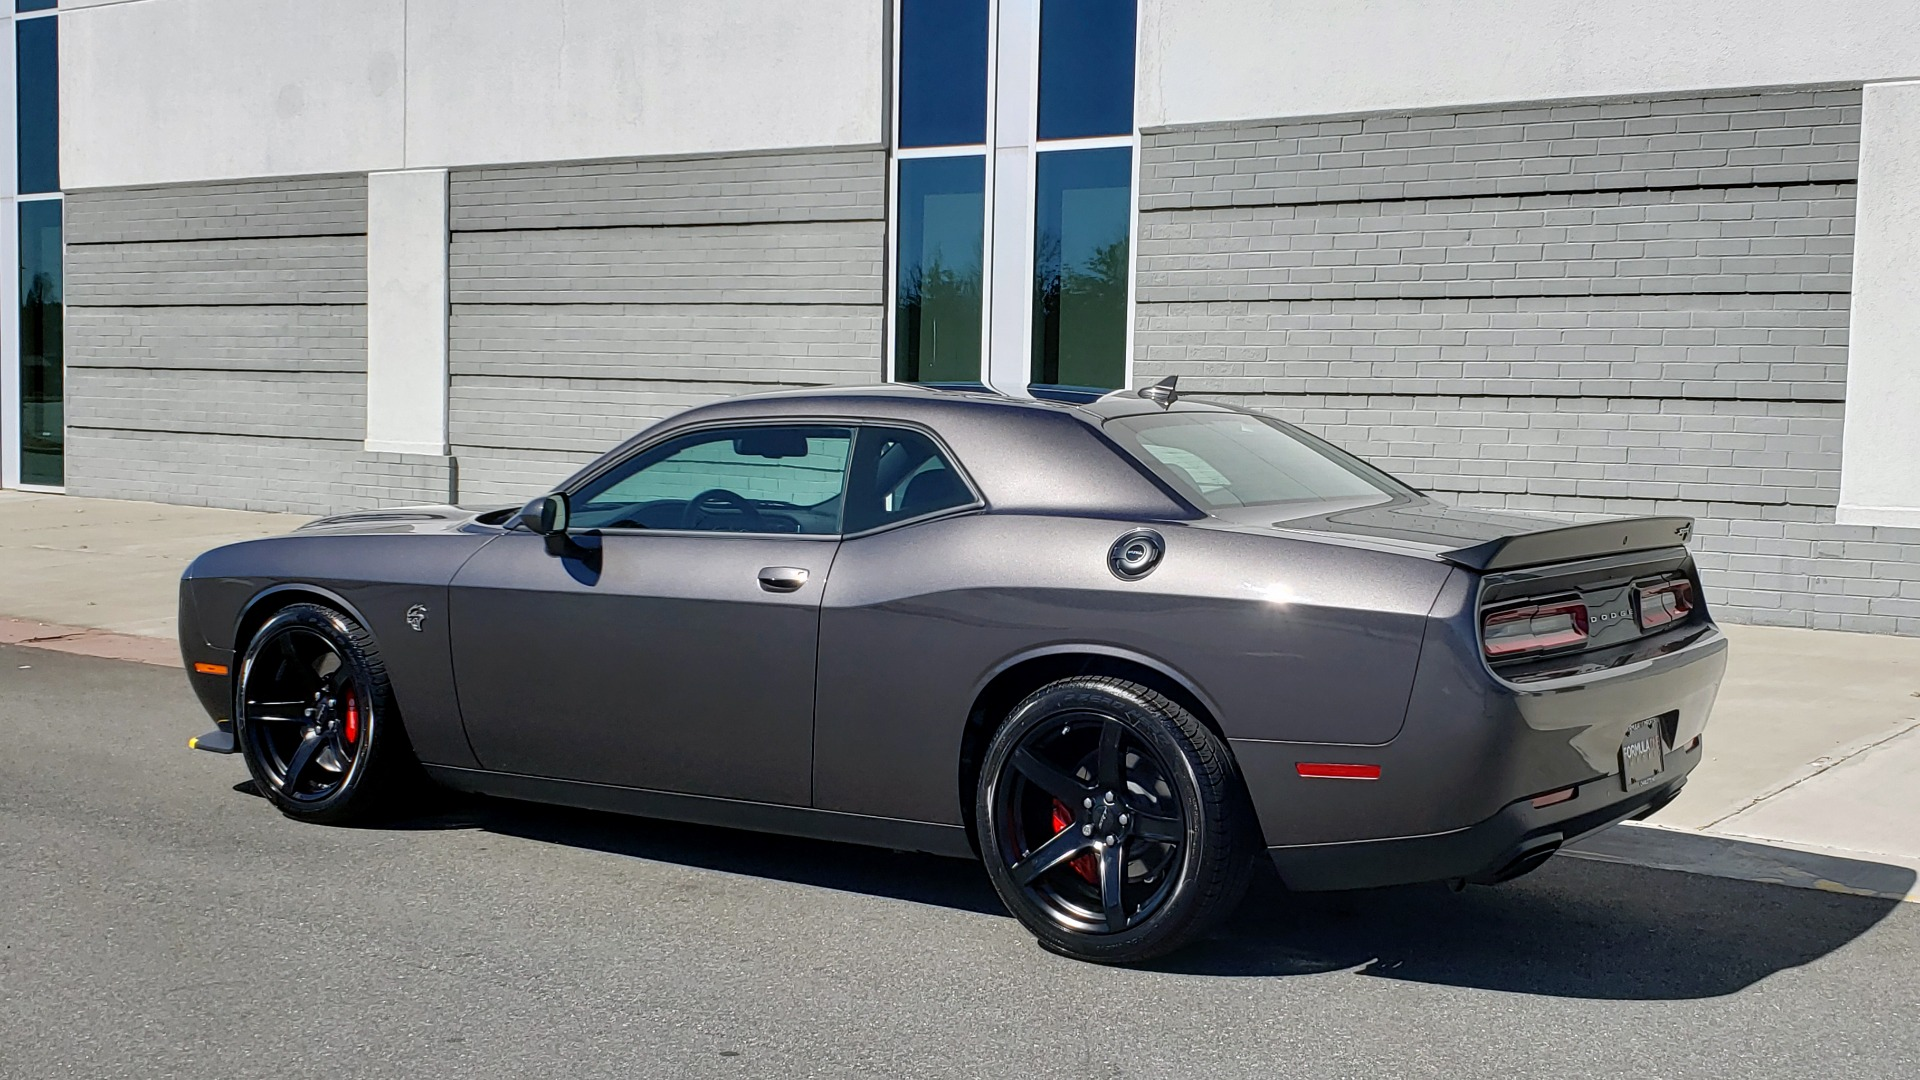 Used 2020 Dodge CHALLENGER SRT HELLCAT (717HP) / NAV / AUTO / CLOTH / REARVIEW / LOW MILES for sale Sold at Formula Imports in Charlotte NC 28227 5